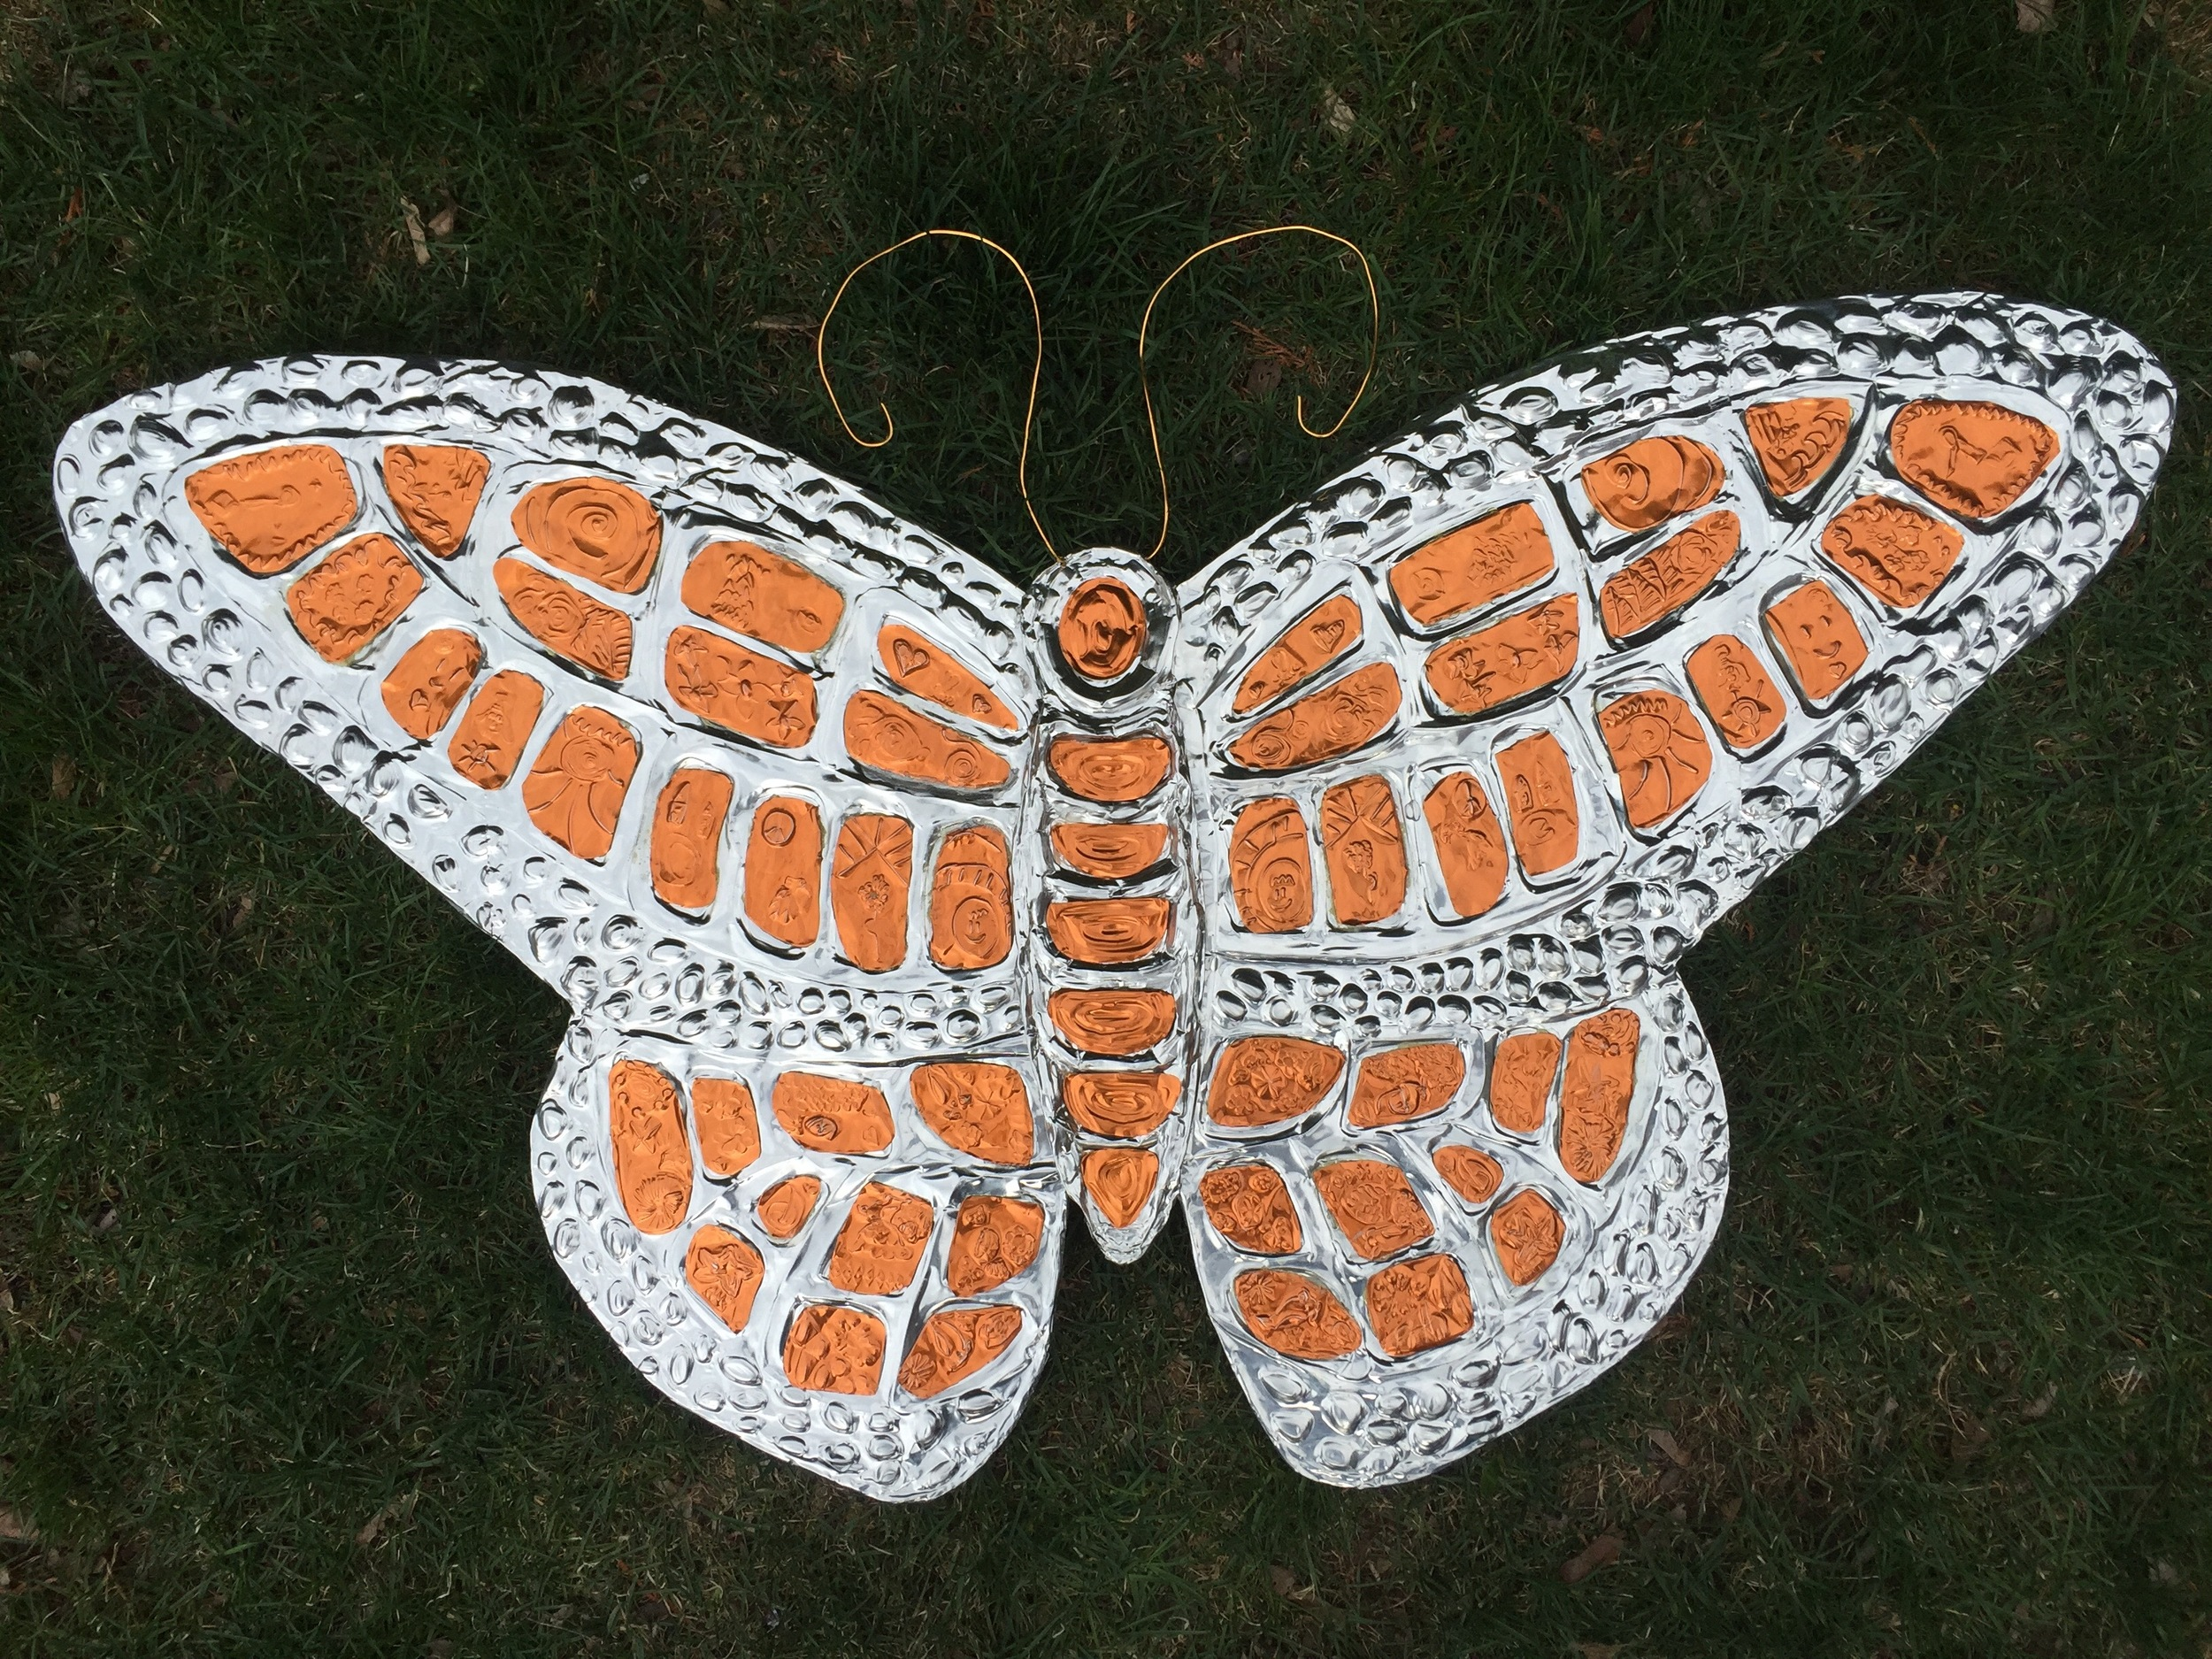 Butterfly mosaic for Children's Hospital